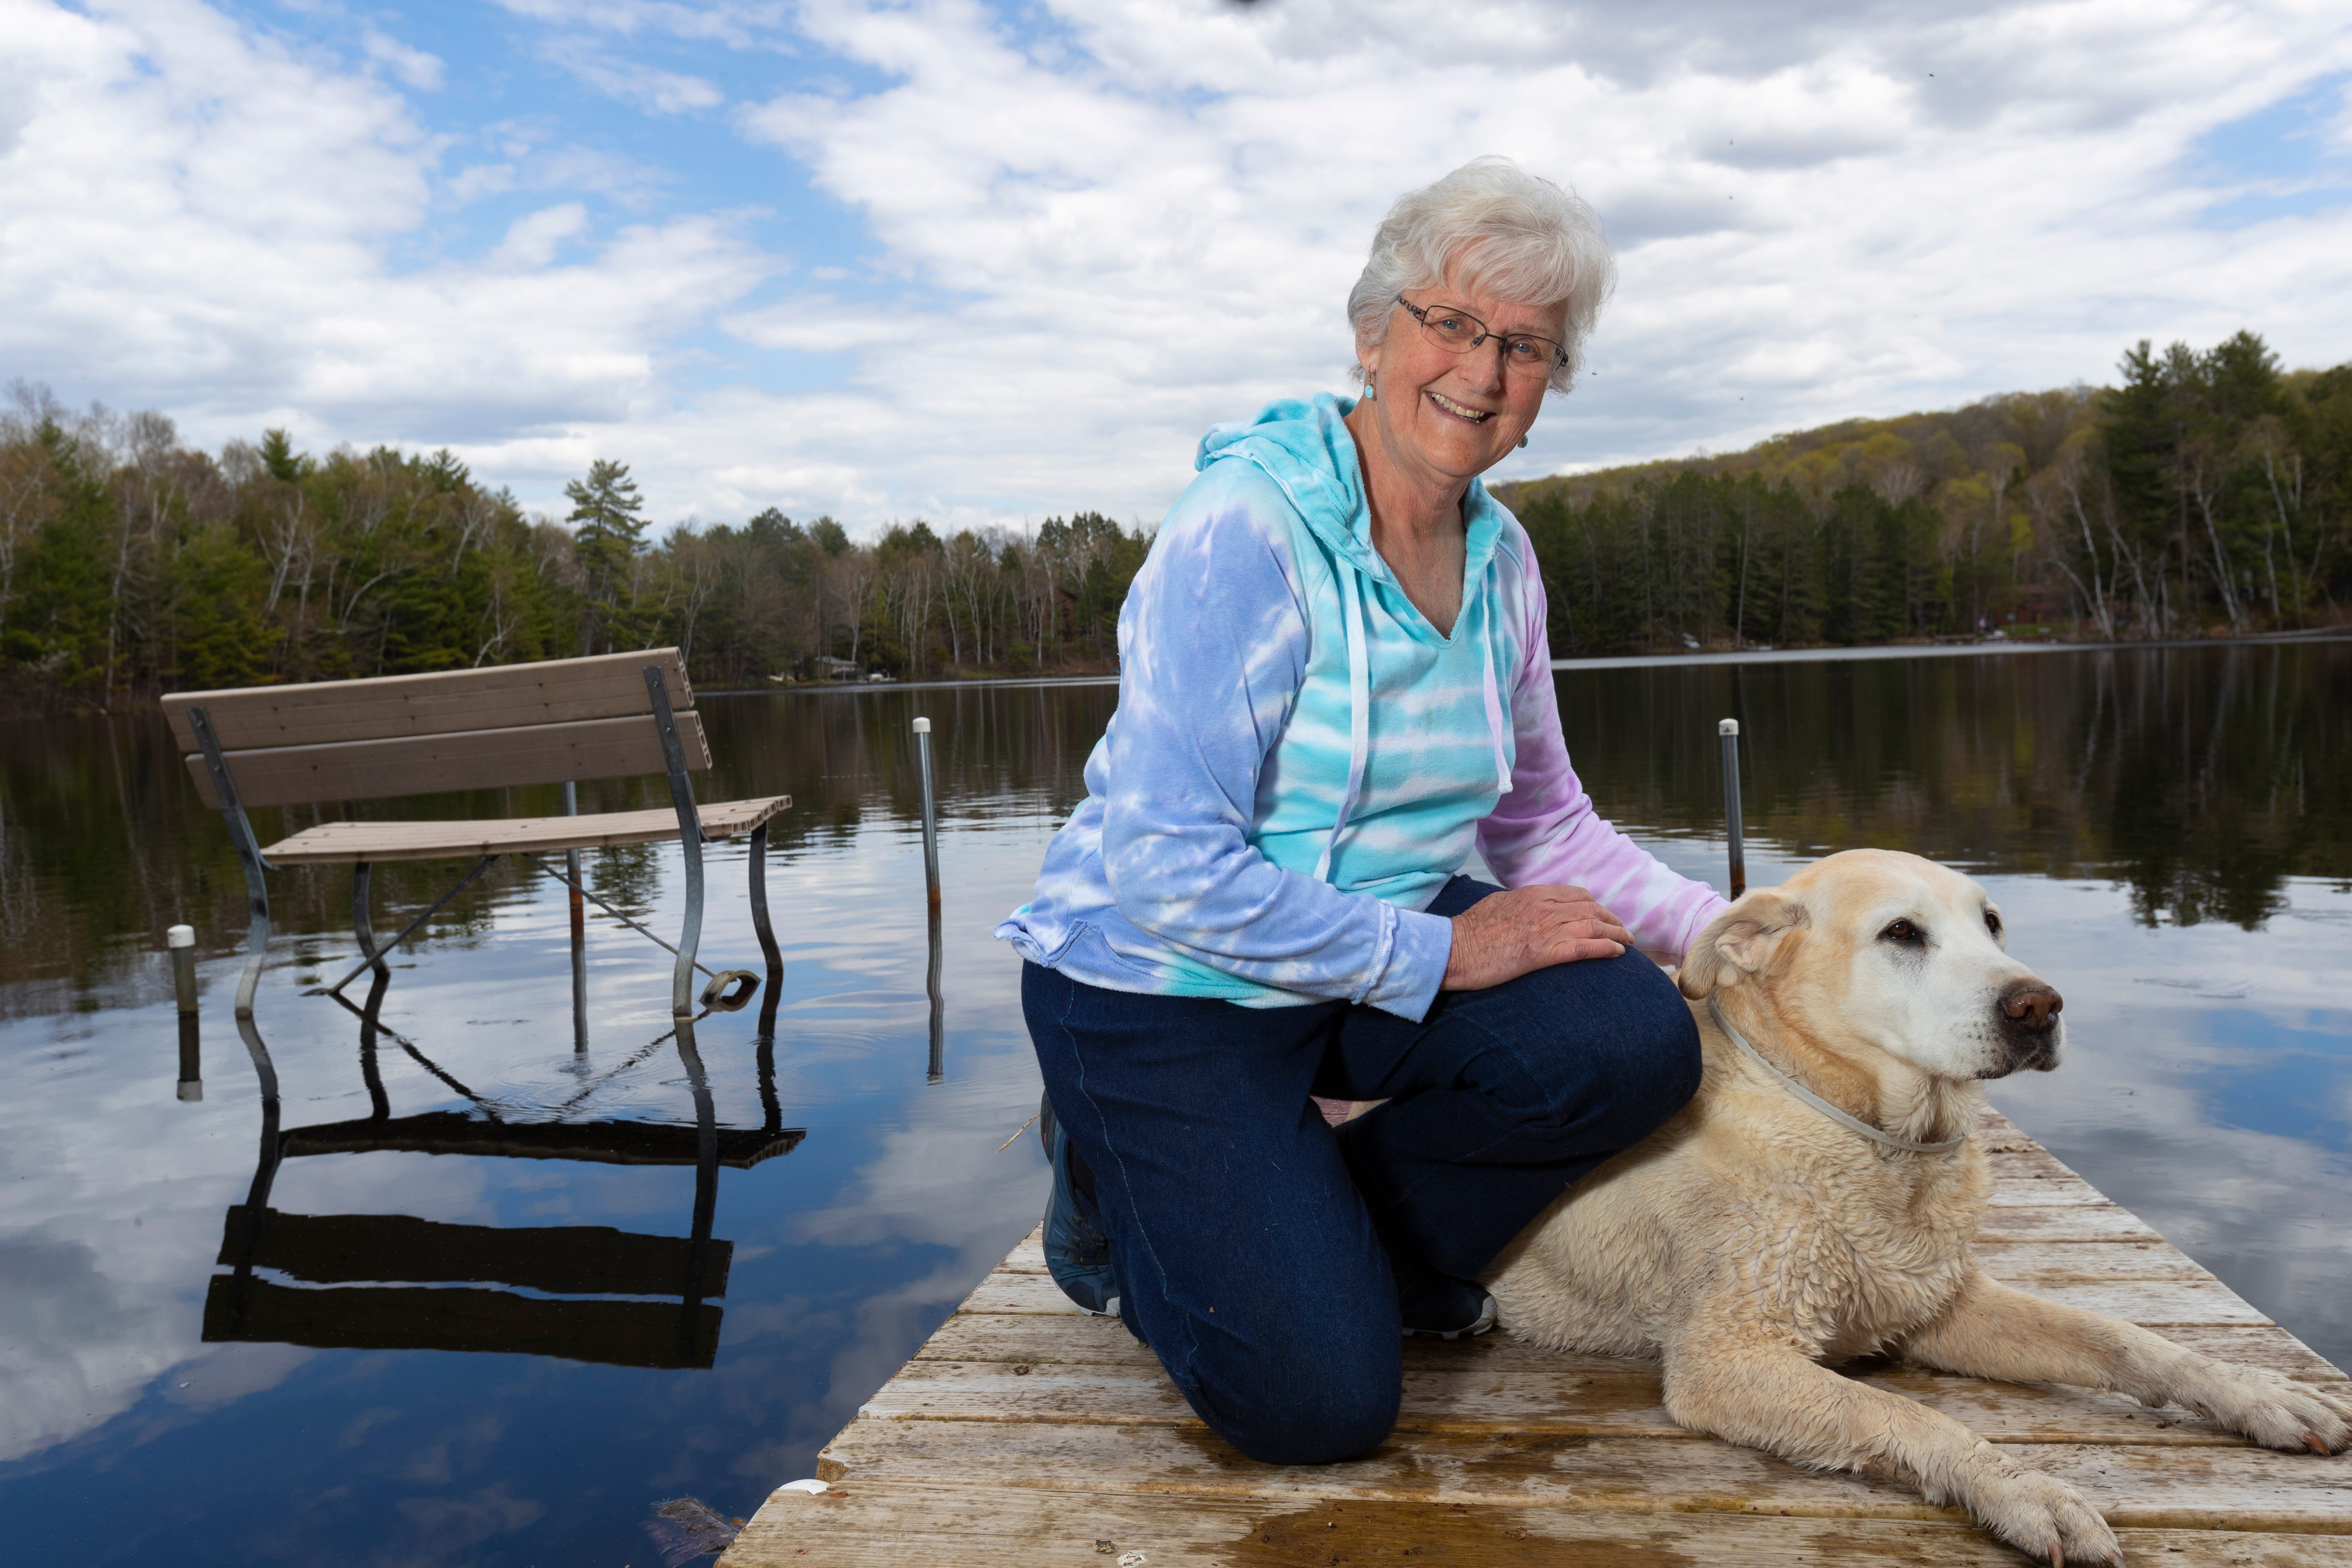 Patricia Voermans with her dog, Tucker, on her dock at her home on Lake Buteau in Gleason. Voermans said broadband always seems just out of reach.